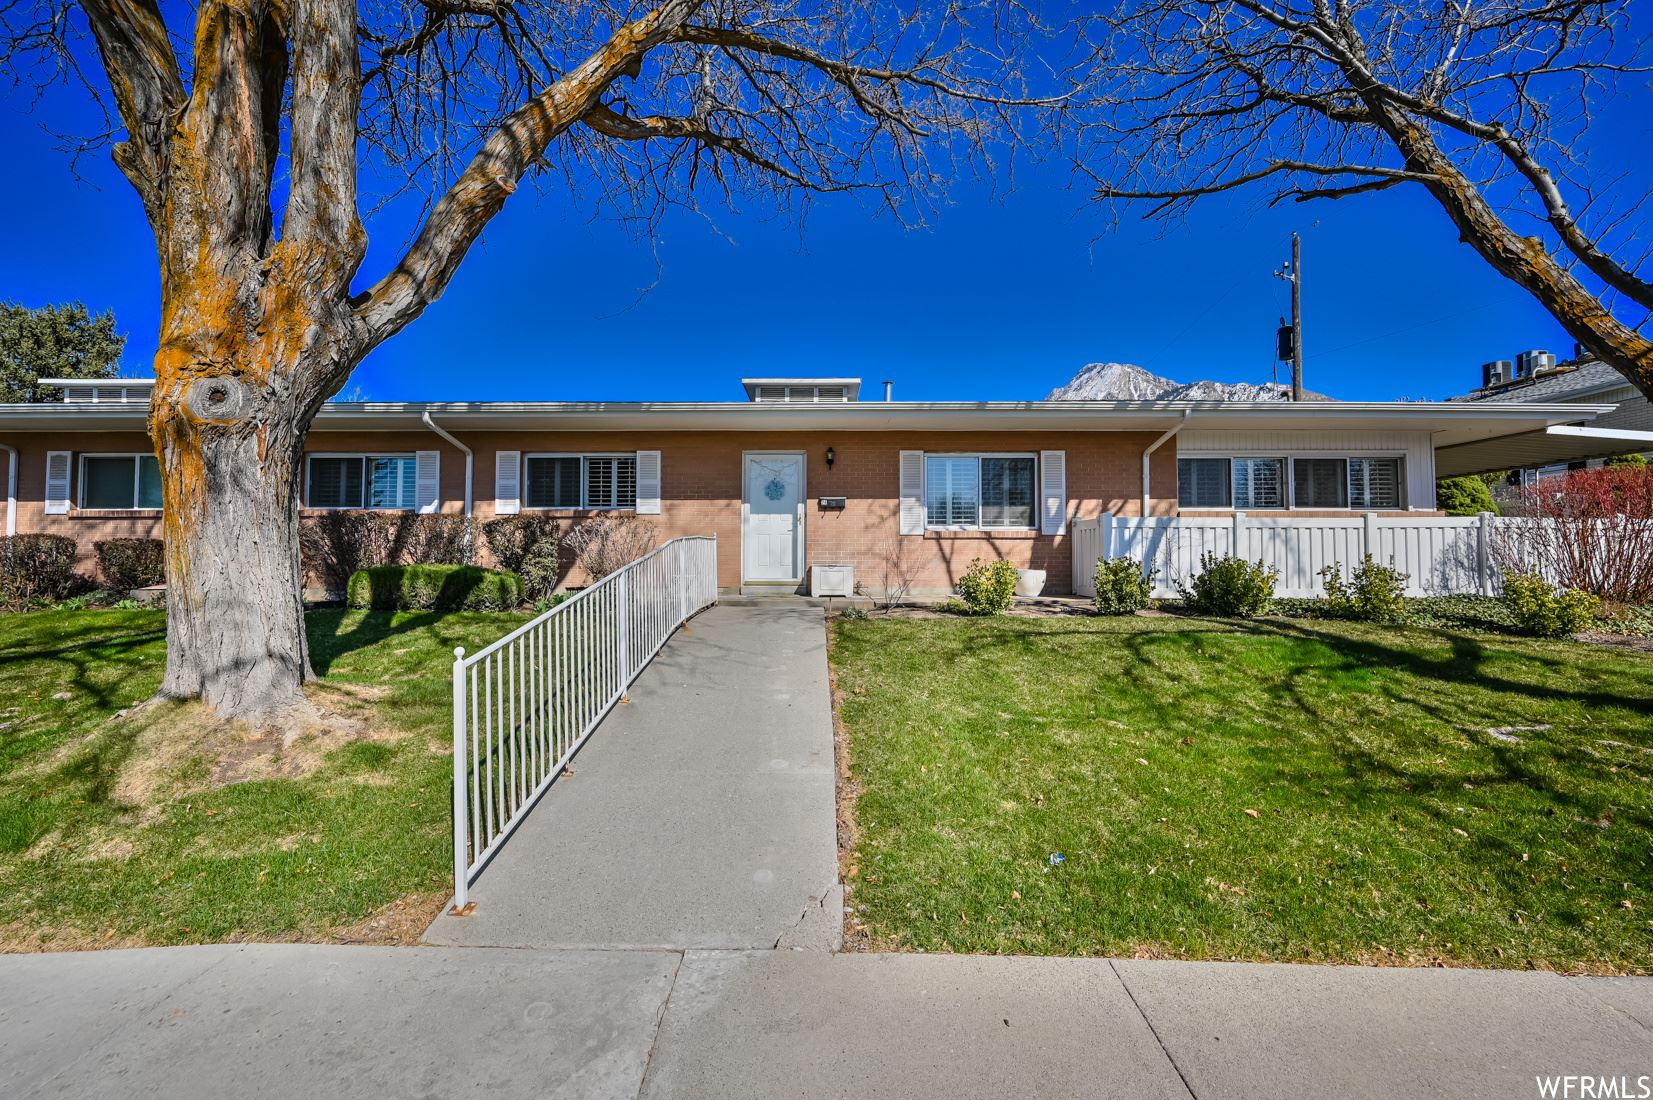 Photo of 2244 E CARRIAGE LN #74, Holladay, UT 84117 (MLS # 1733157)